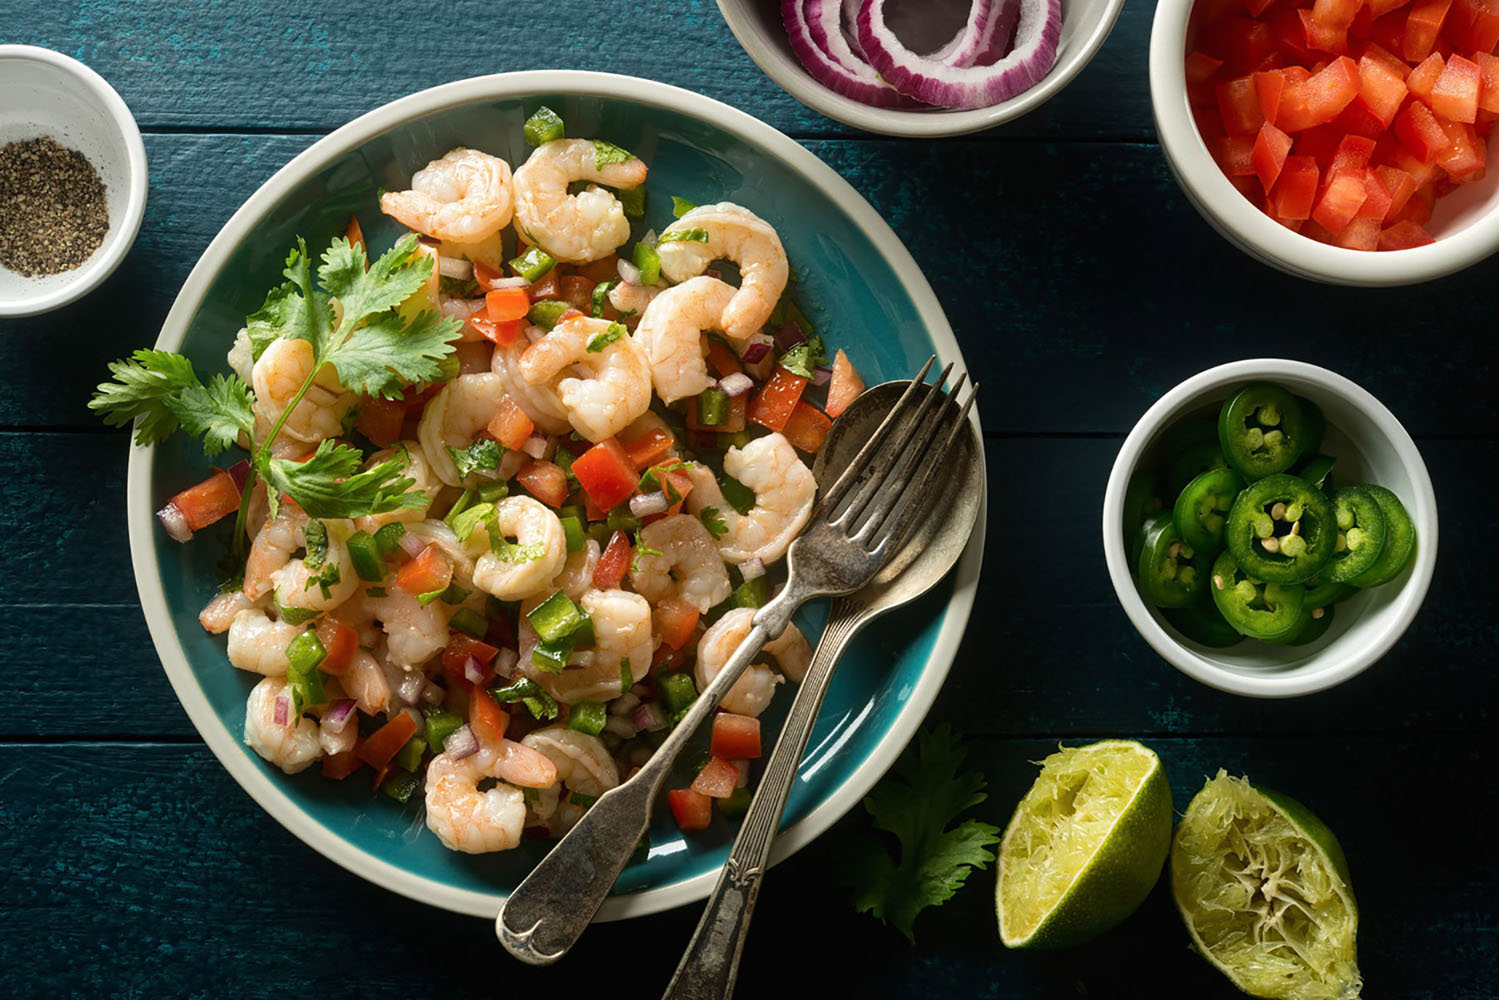 Shrimp ceviche with tomato, red onion, Jalapeño pepper, cilantro and lime.